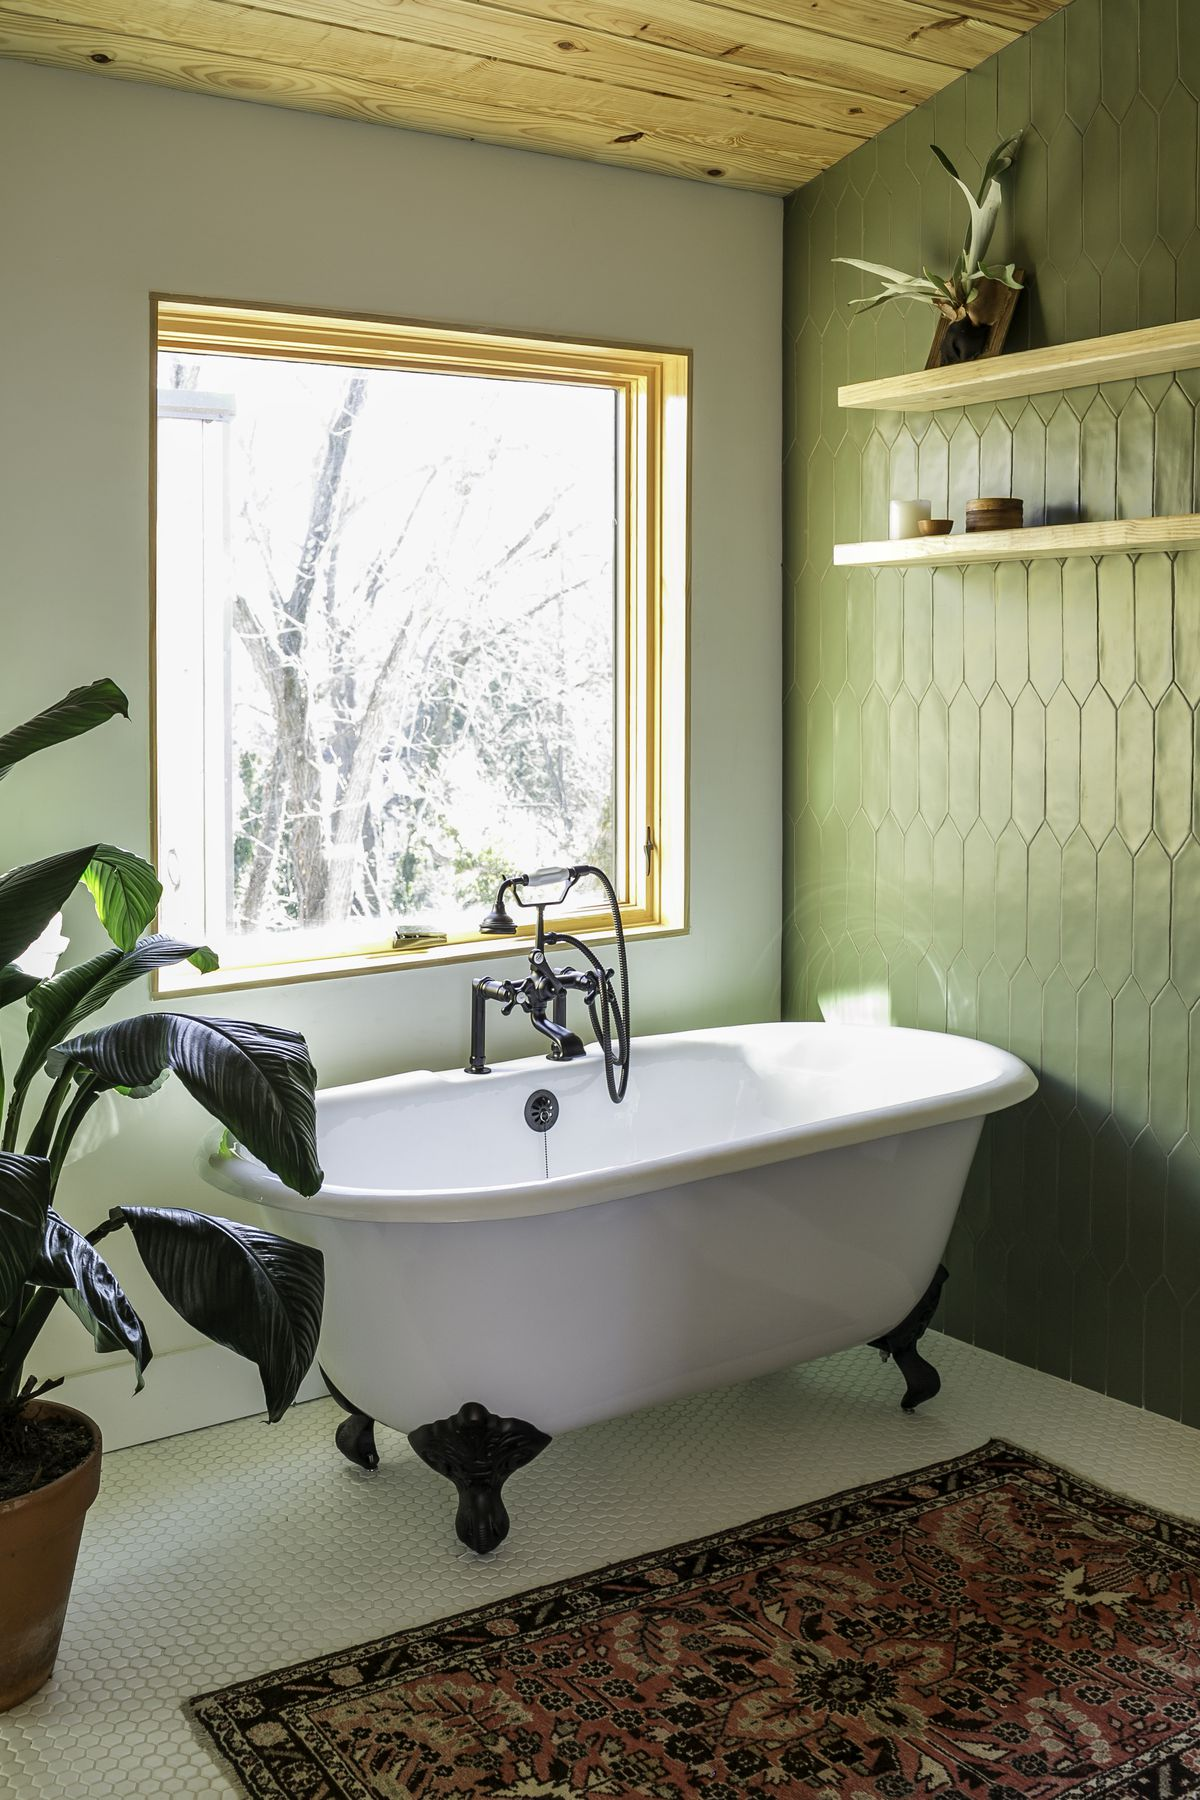 A stand alone tub in the bathroom in front of a very large square window. The bathroom has a wall of green tile, and there is a carpet in front of the tub, with a large plant.